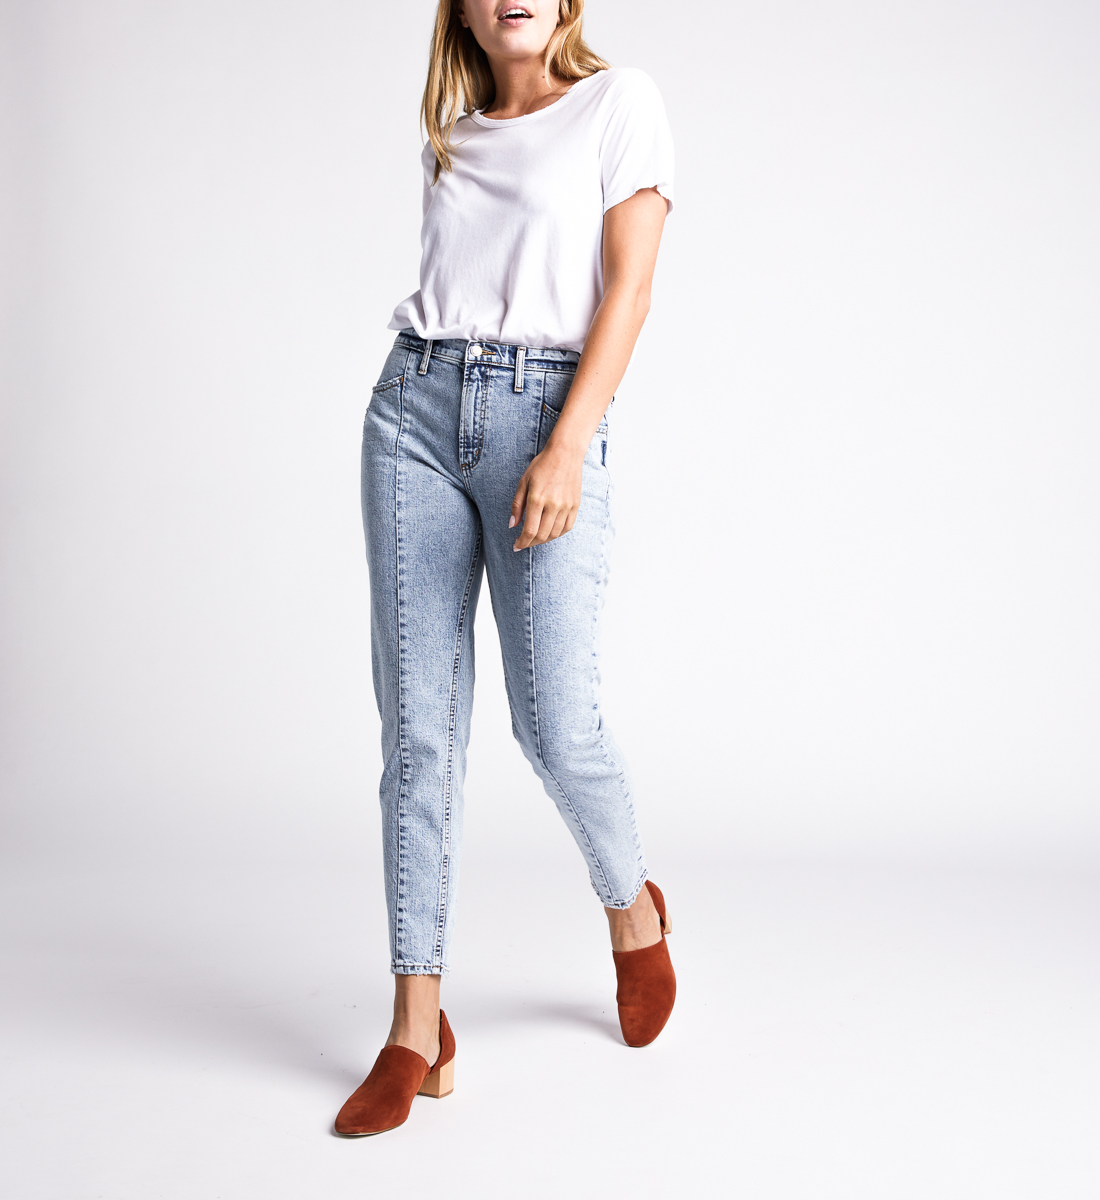 Silver Jeans Frisco Tapered High Rise Tapered Leg Jeans